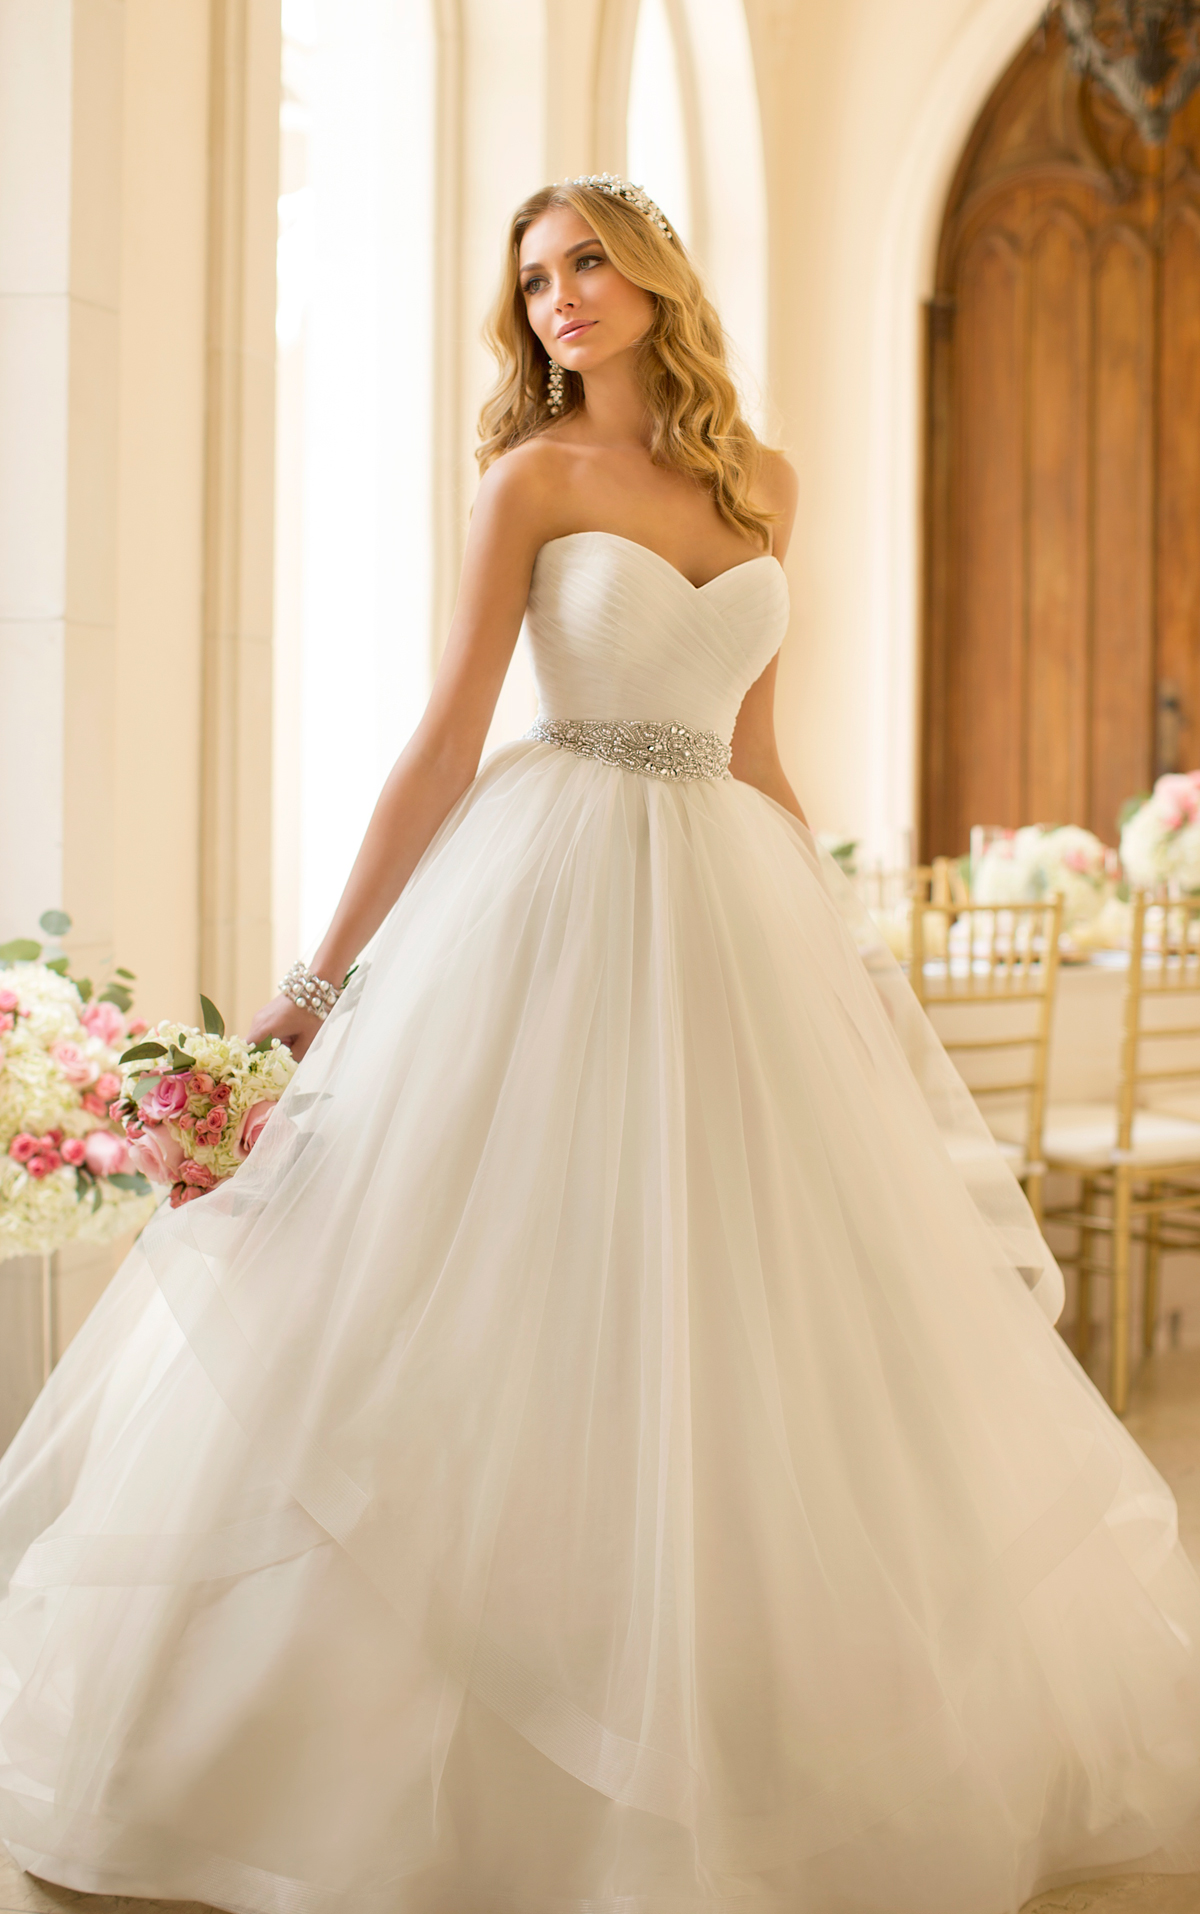 the best gowns from the most in demand wedding dress designers part ii